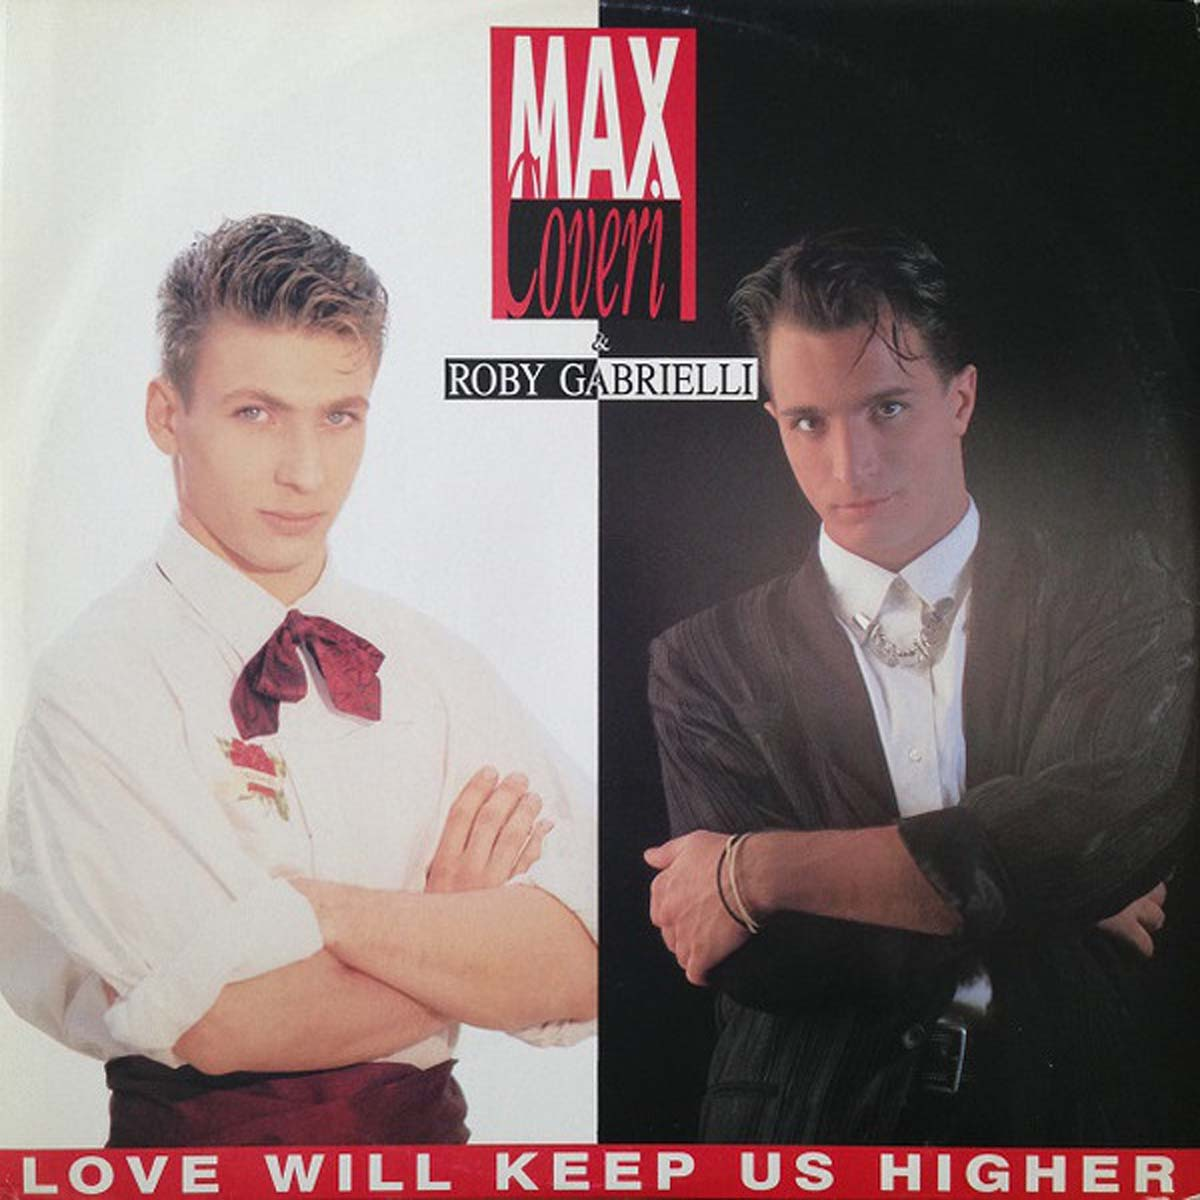 max cover roby gabrielli love will keep us higher 12 inch vinyl